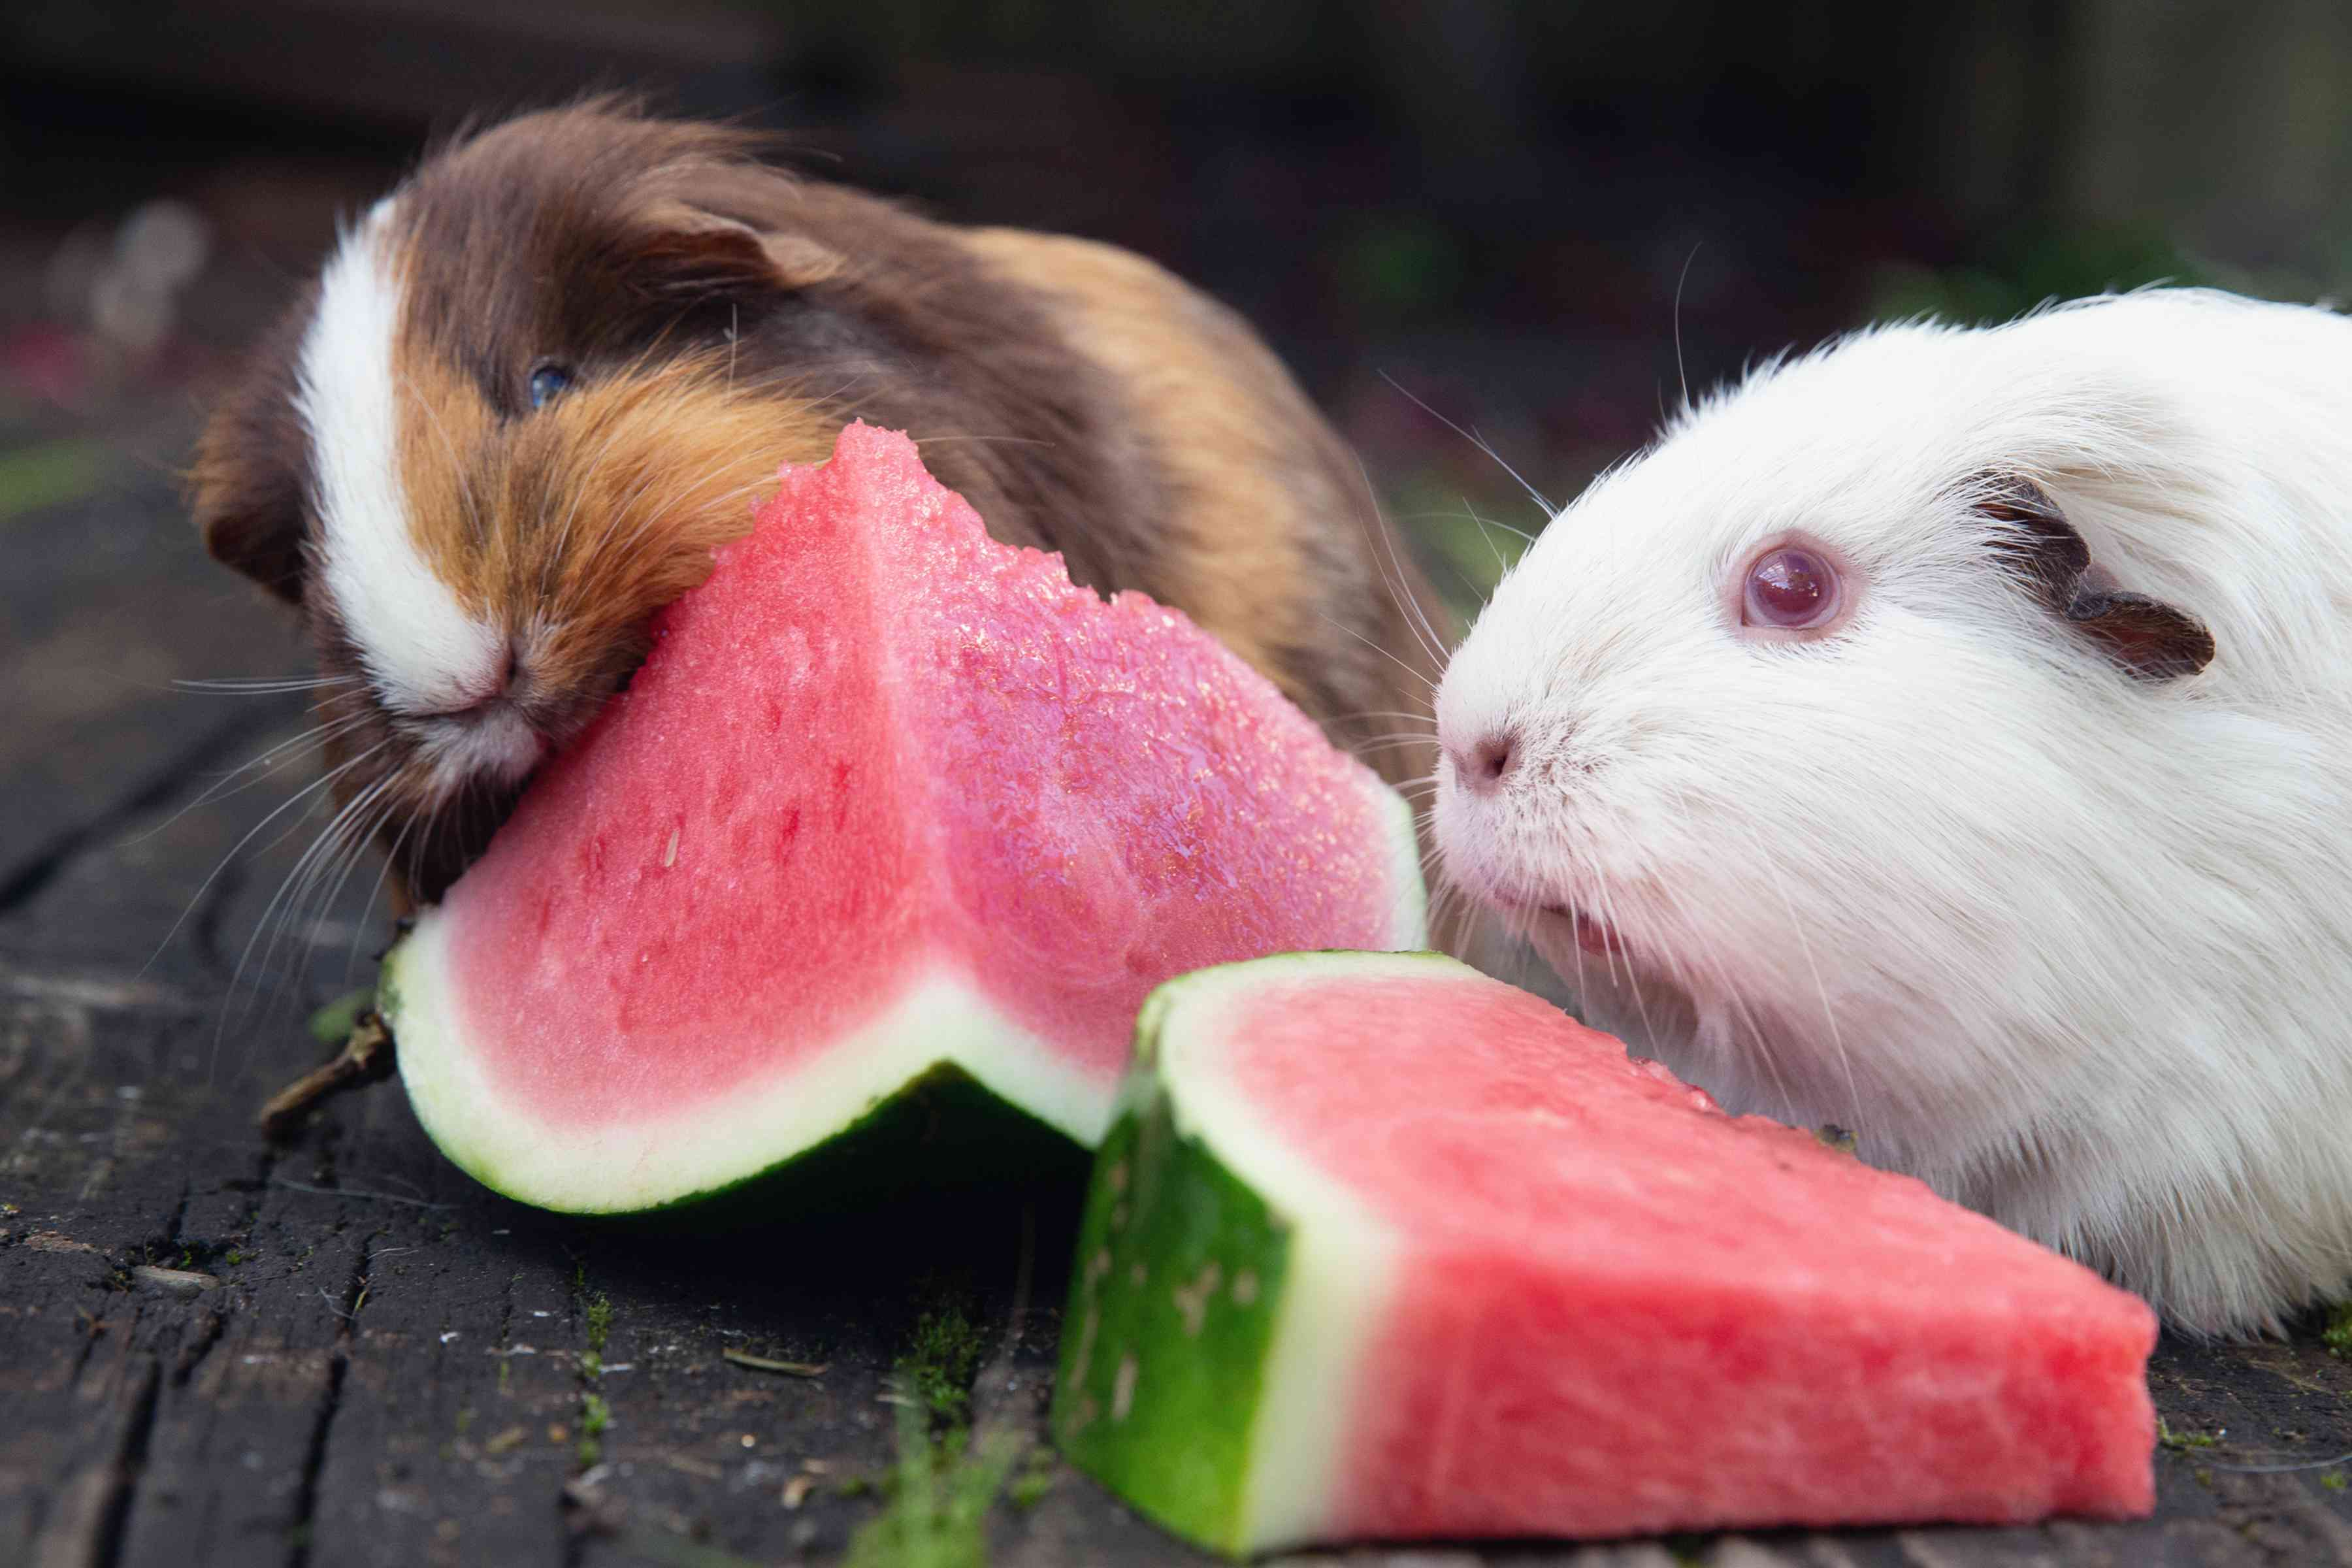 Brown and white guinea pigs eating fresh watermelon slices